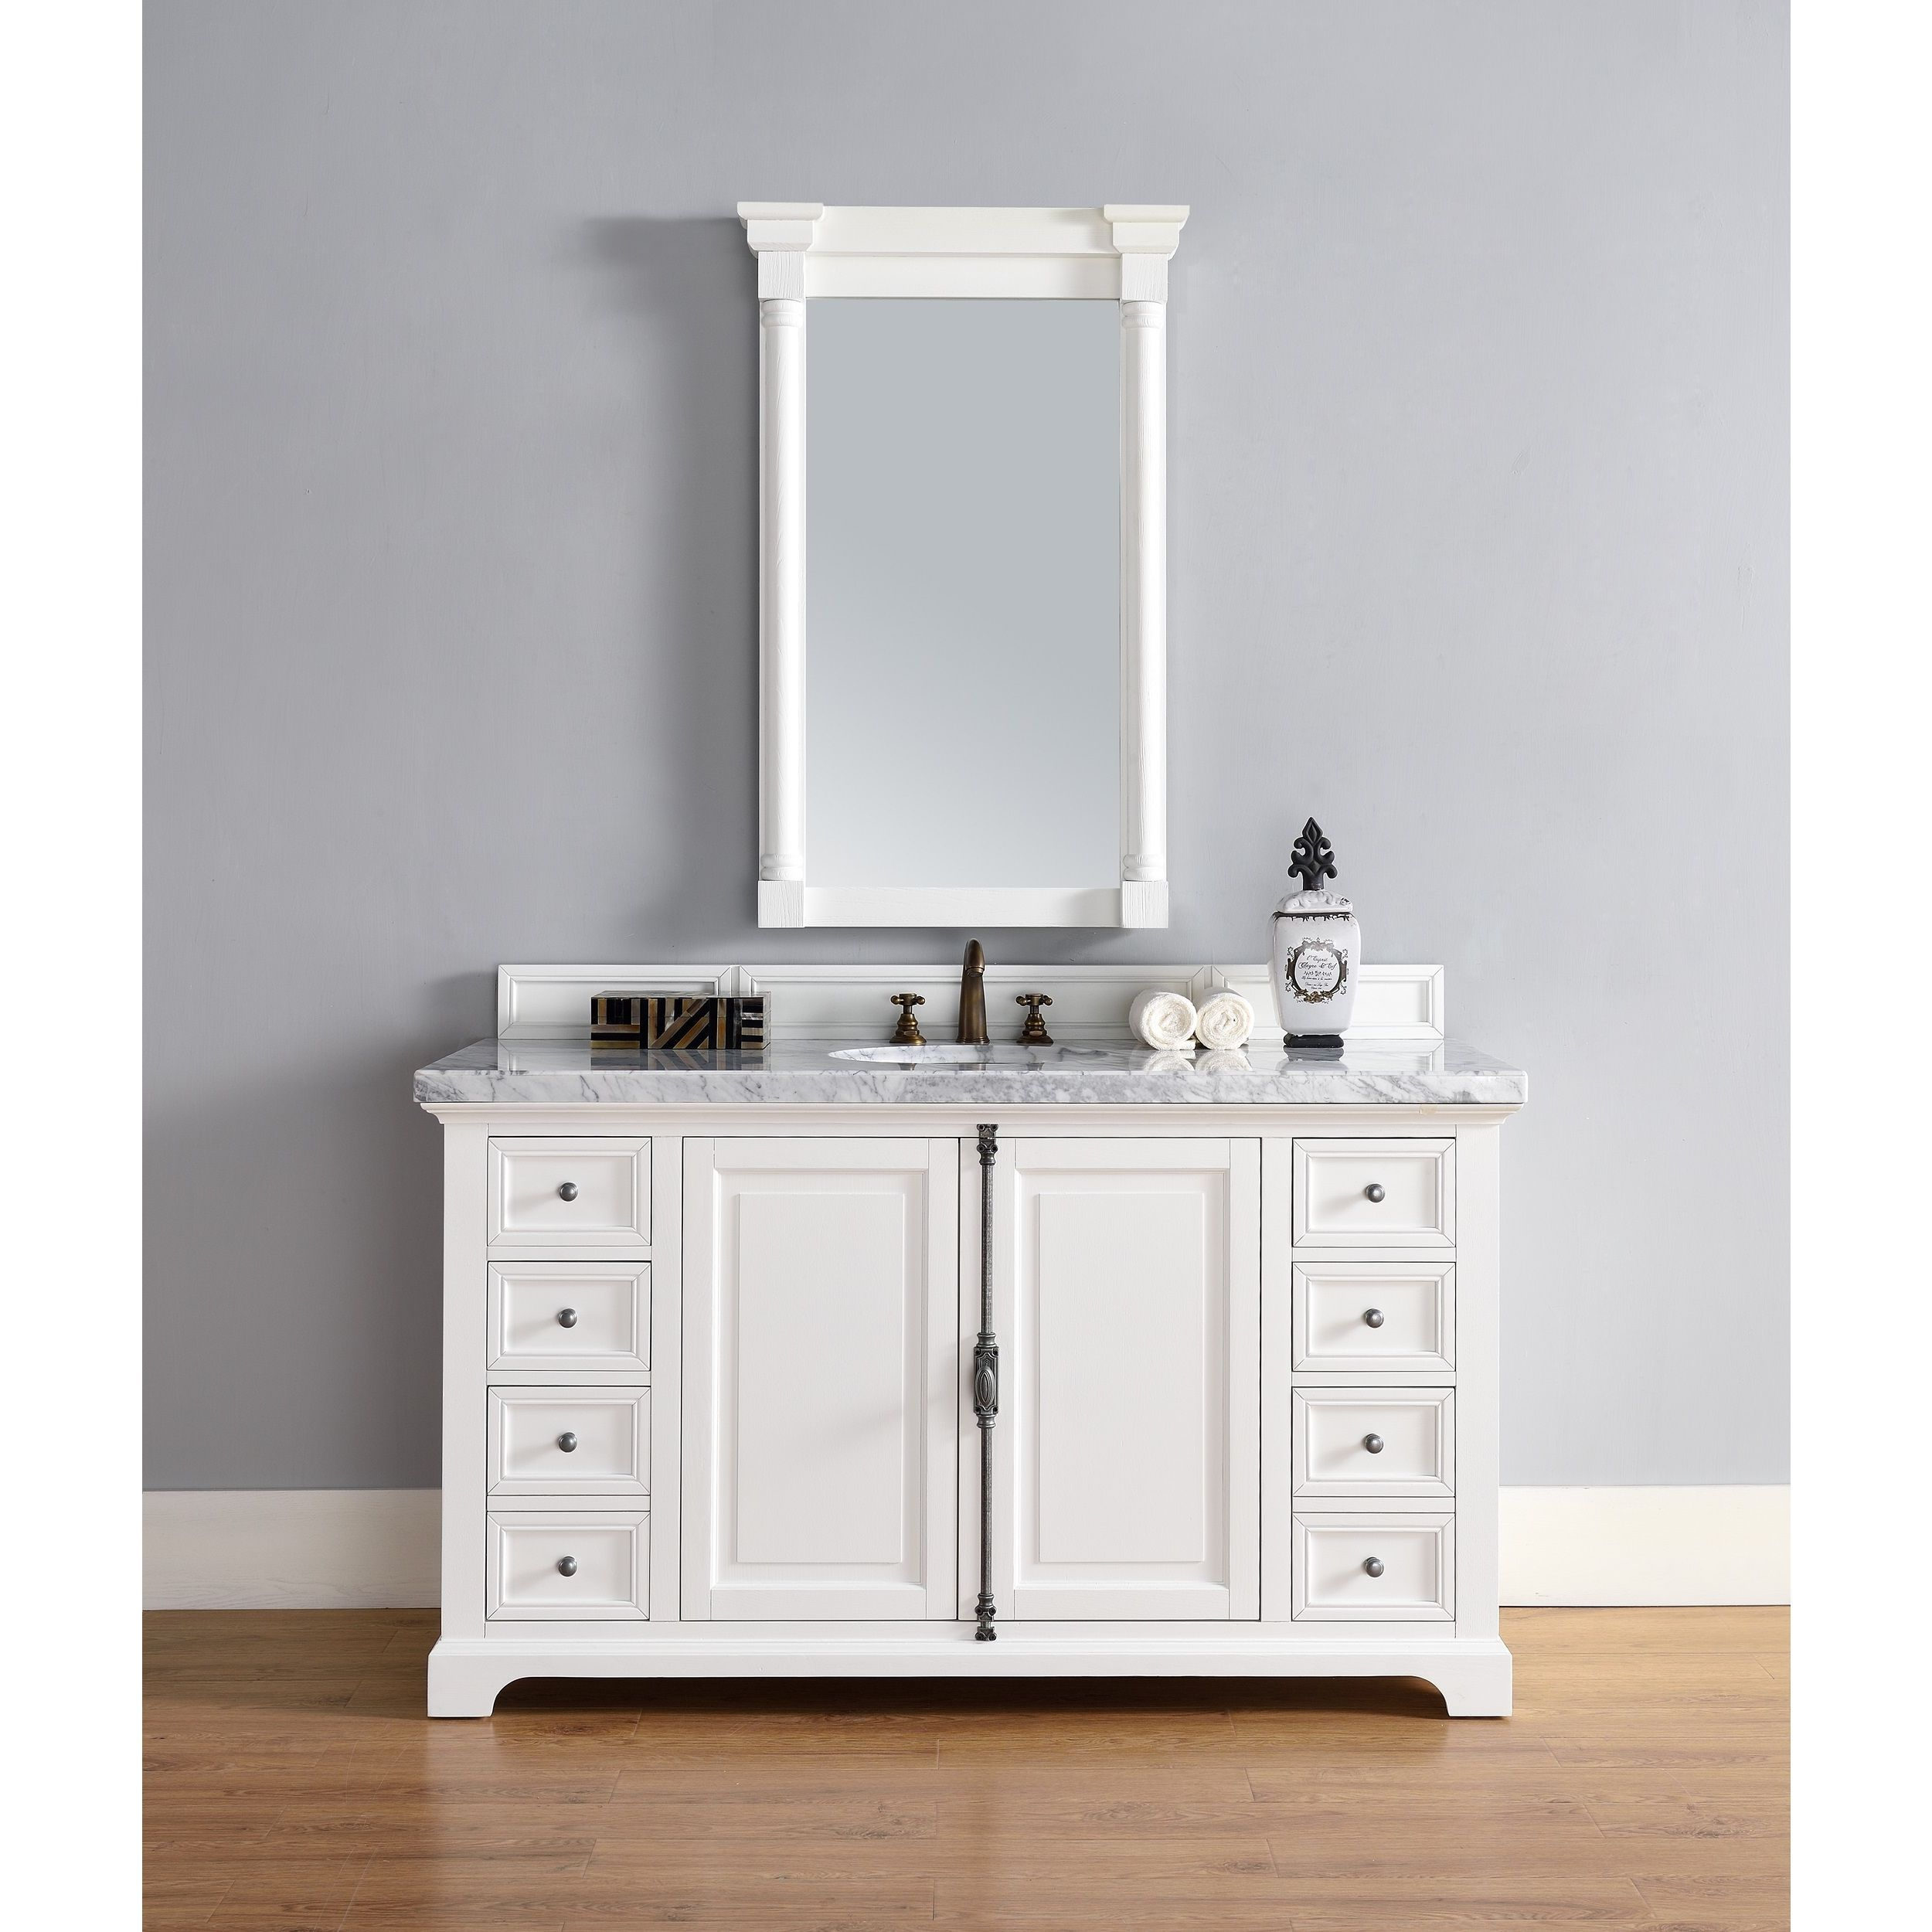 mirrors collection lighting and vanity bathroom shaker with mountlake drawers pin matching our from